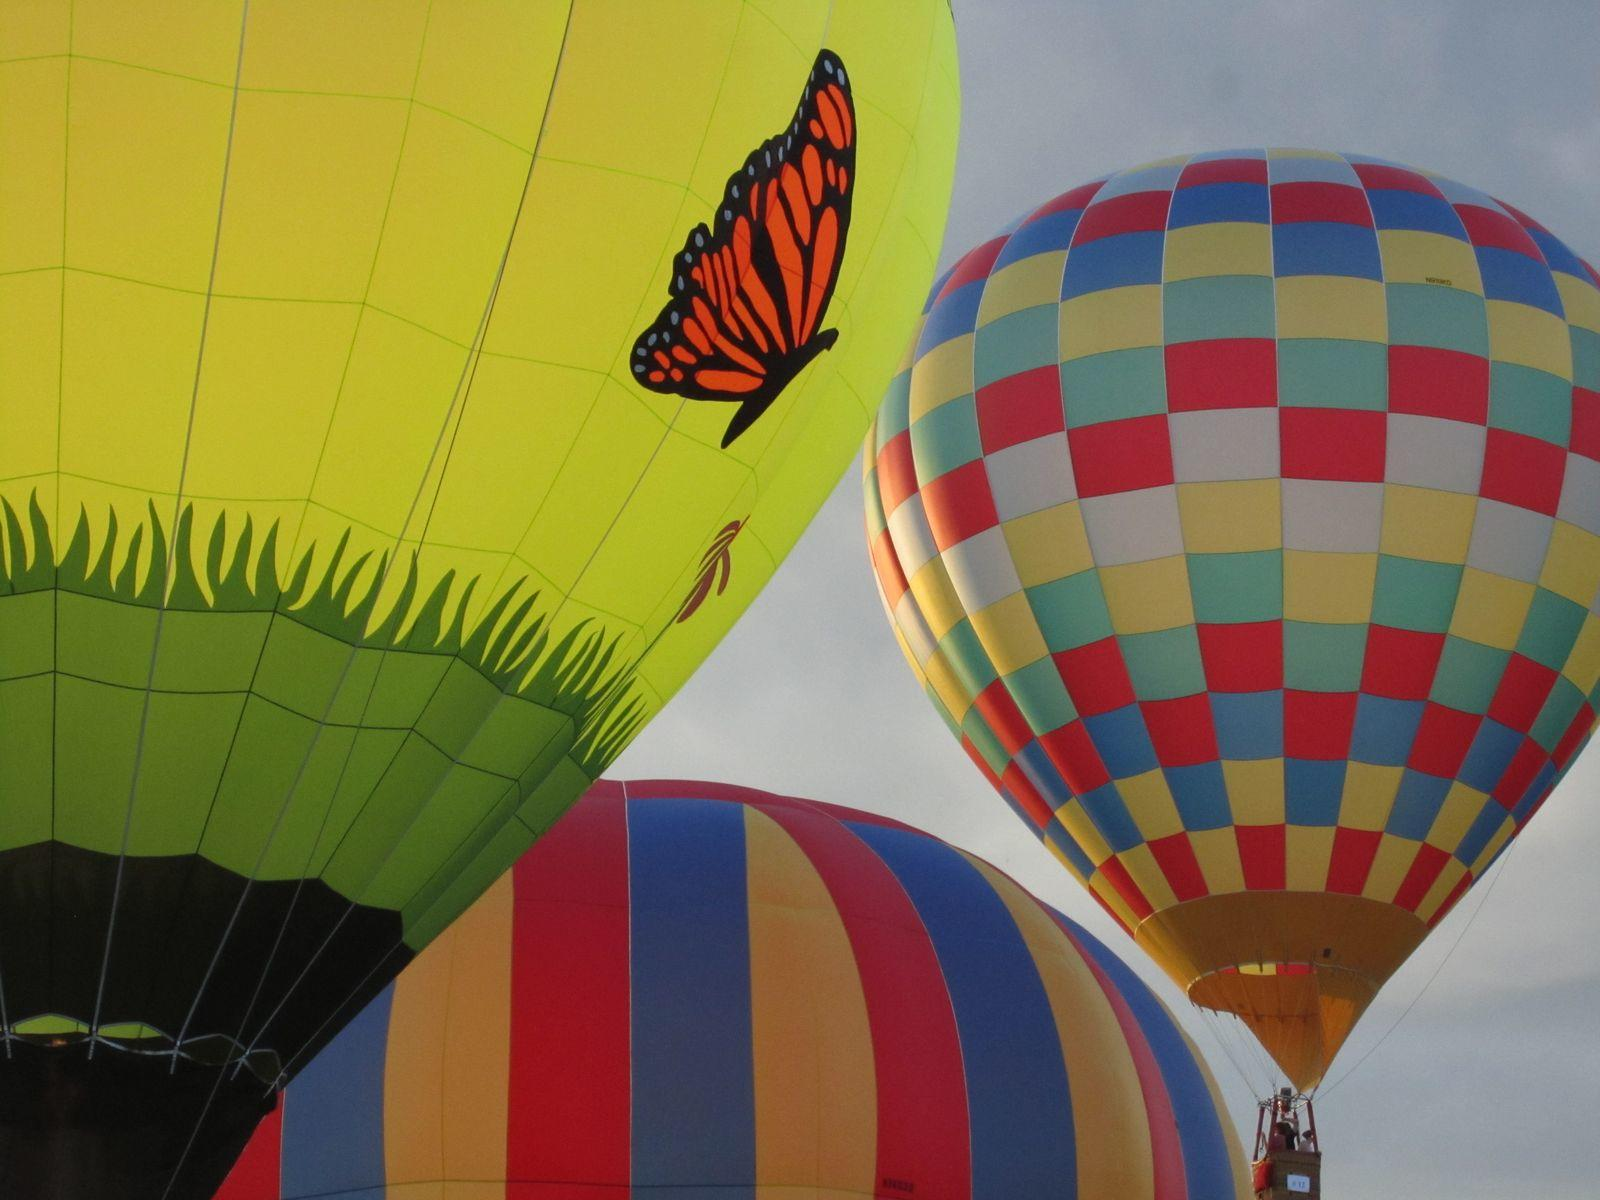 Hot air balloons, one with a monarch butterfly.